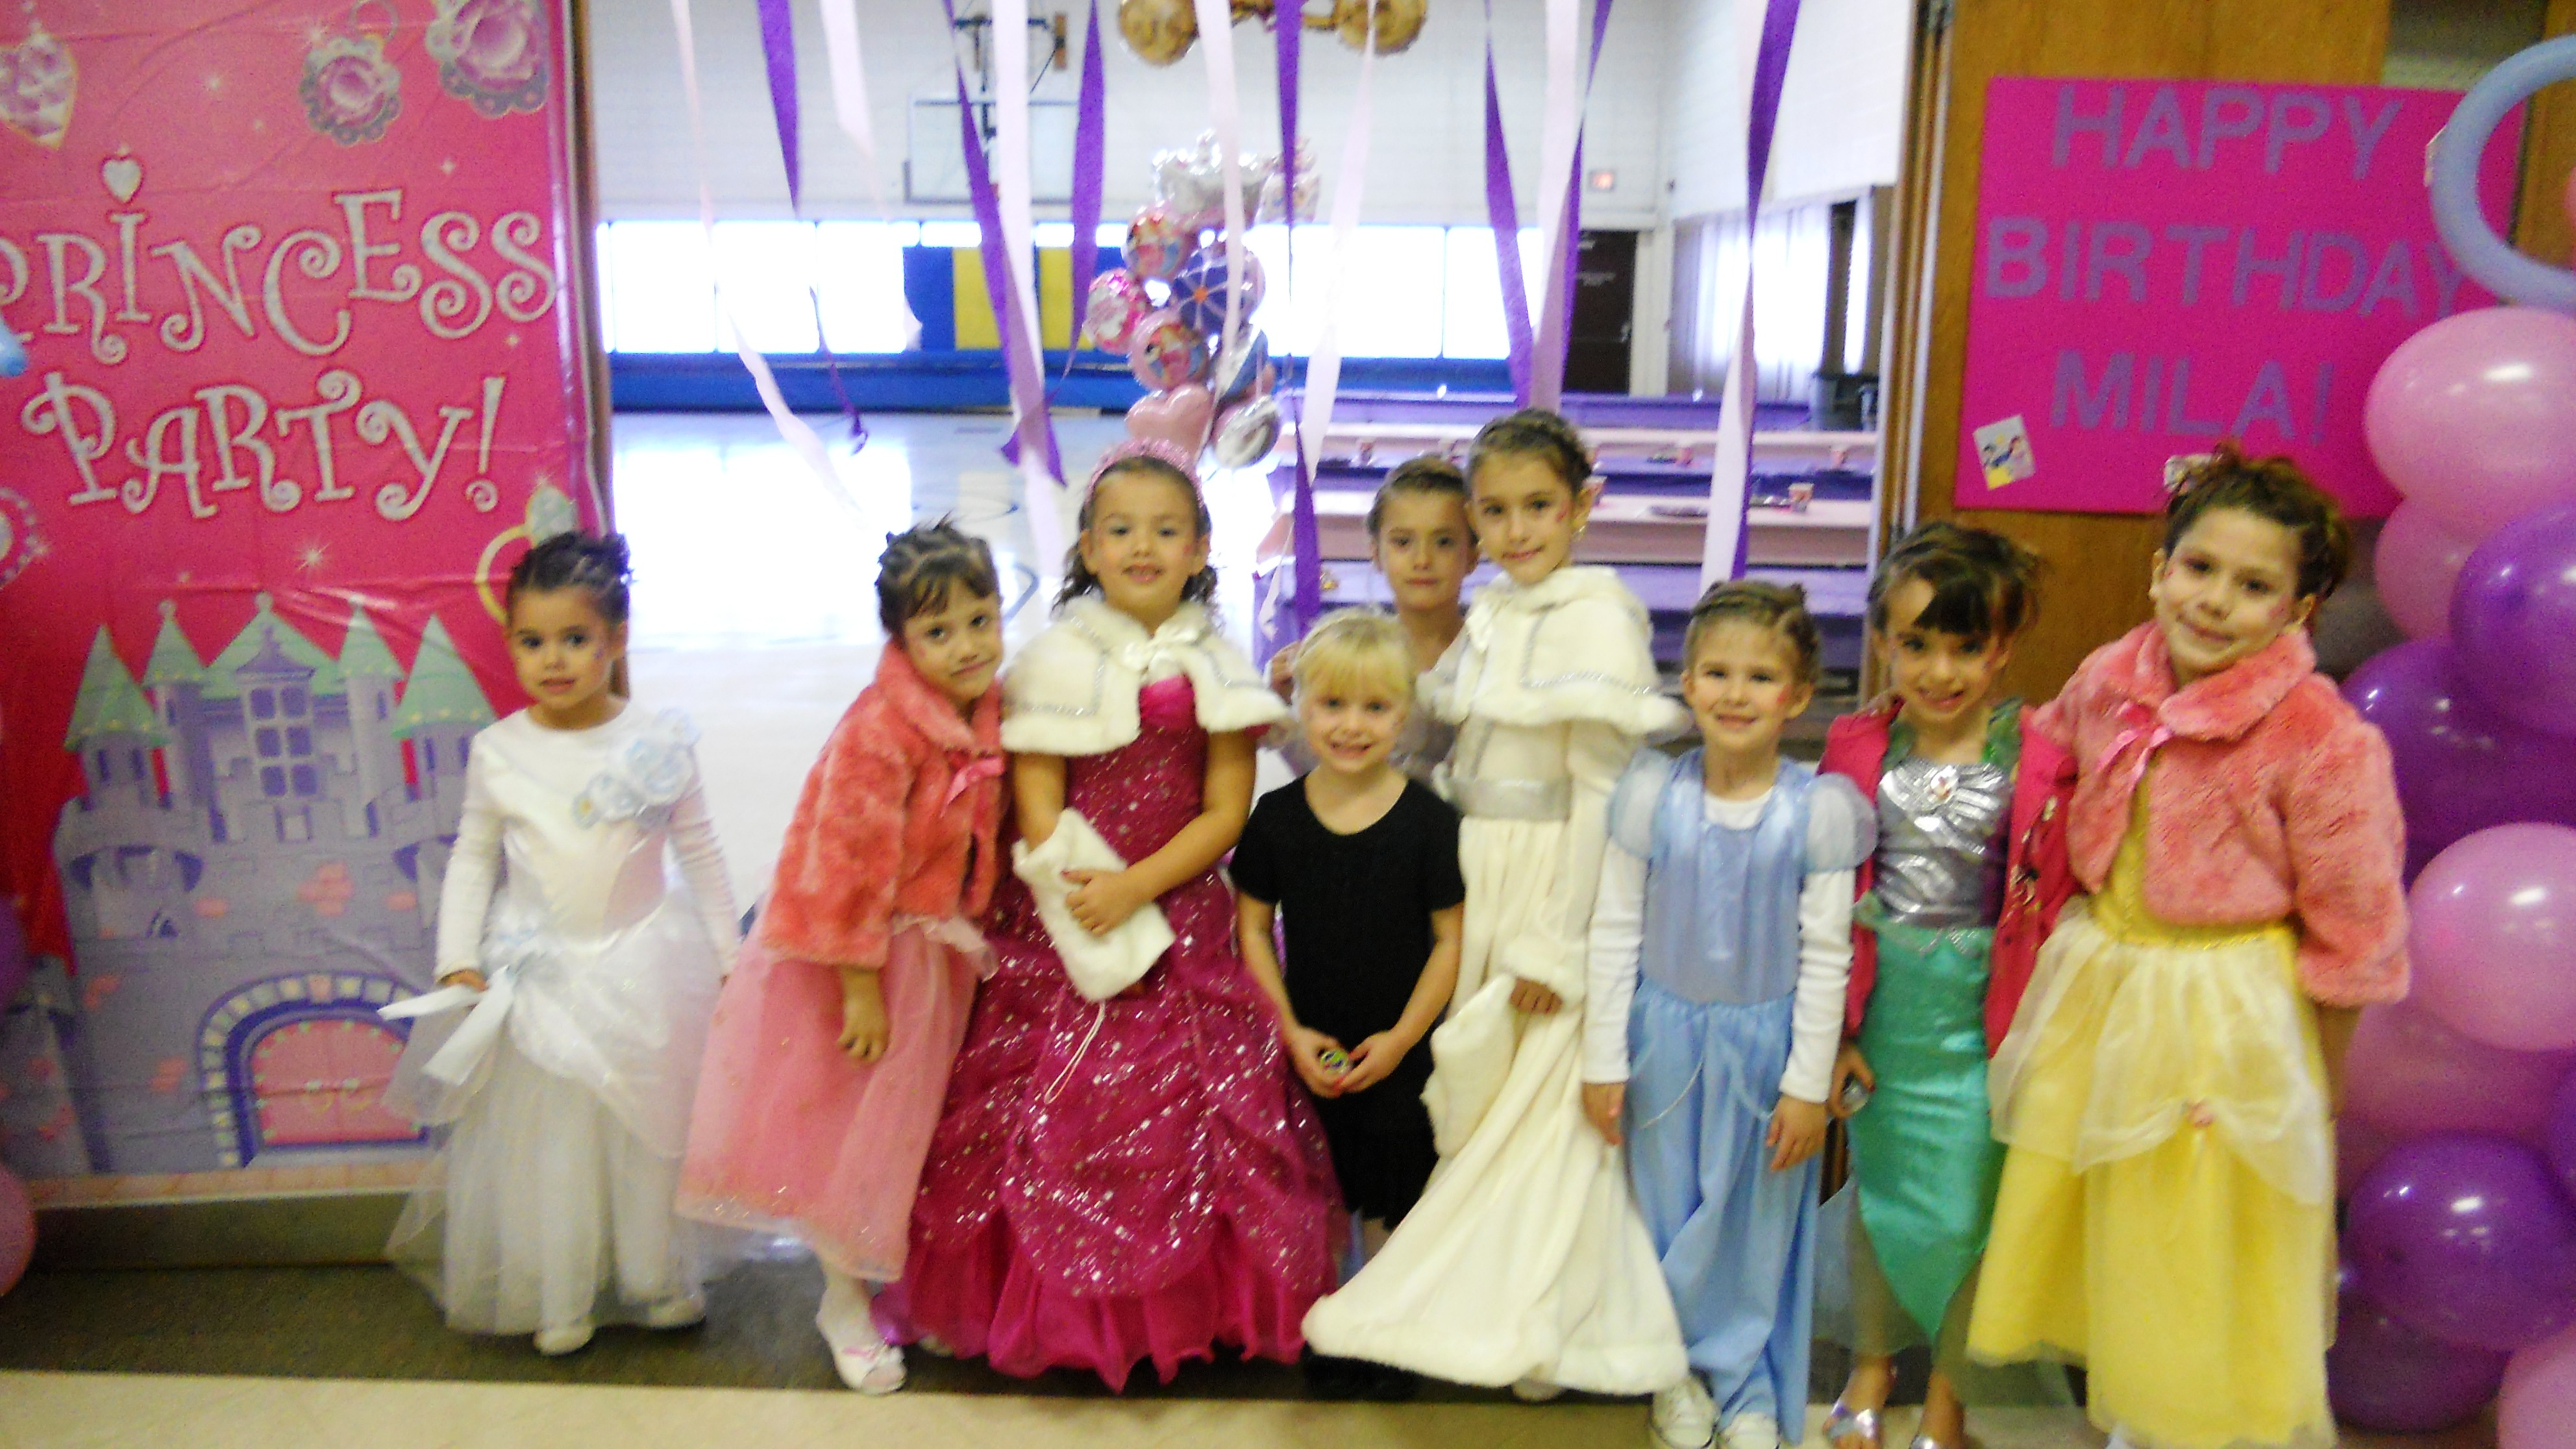 Group of Young Girls Having a Princess Birthday Party